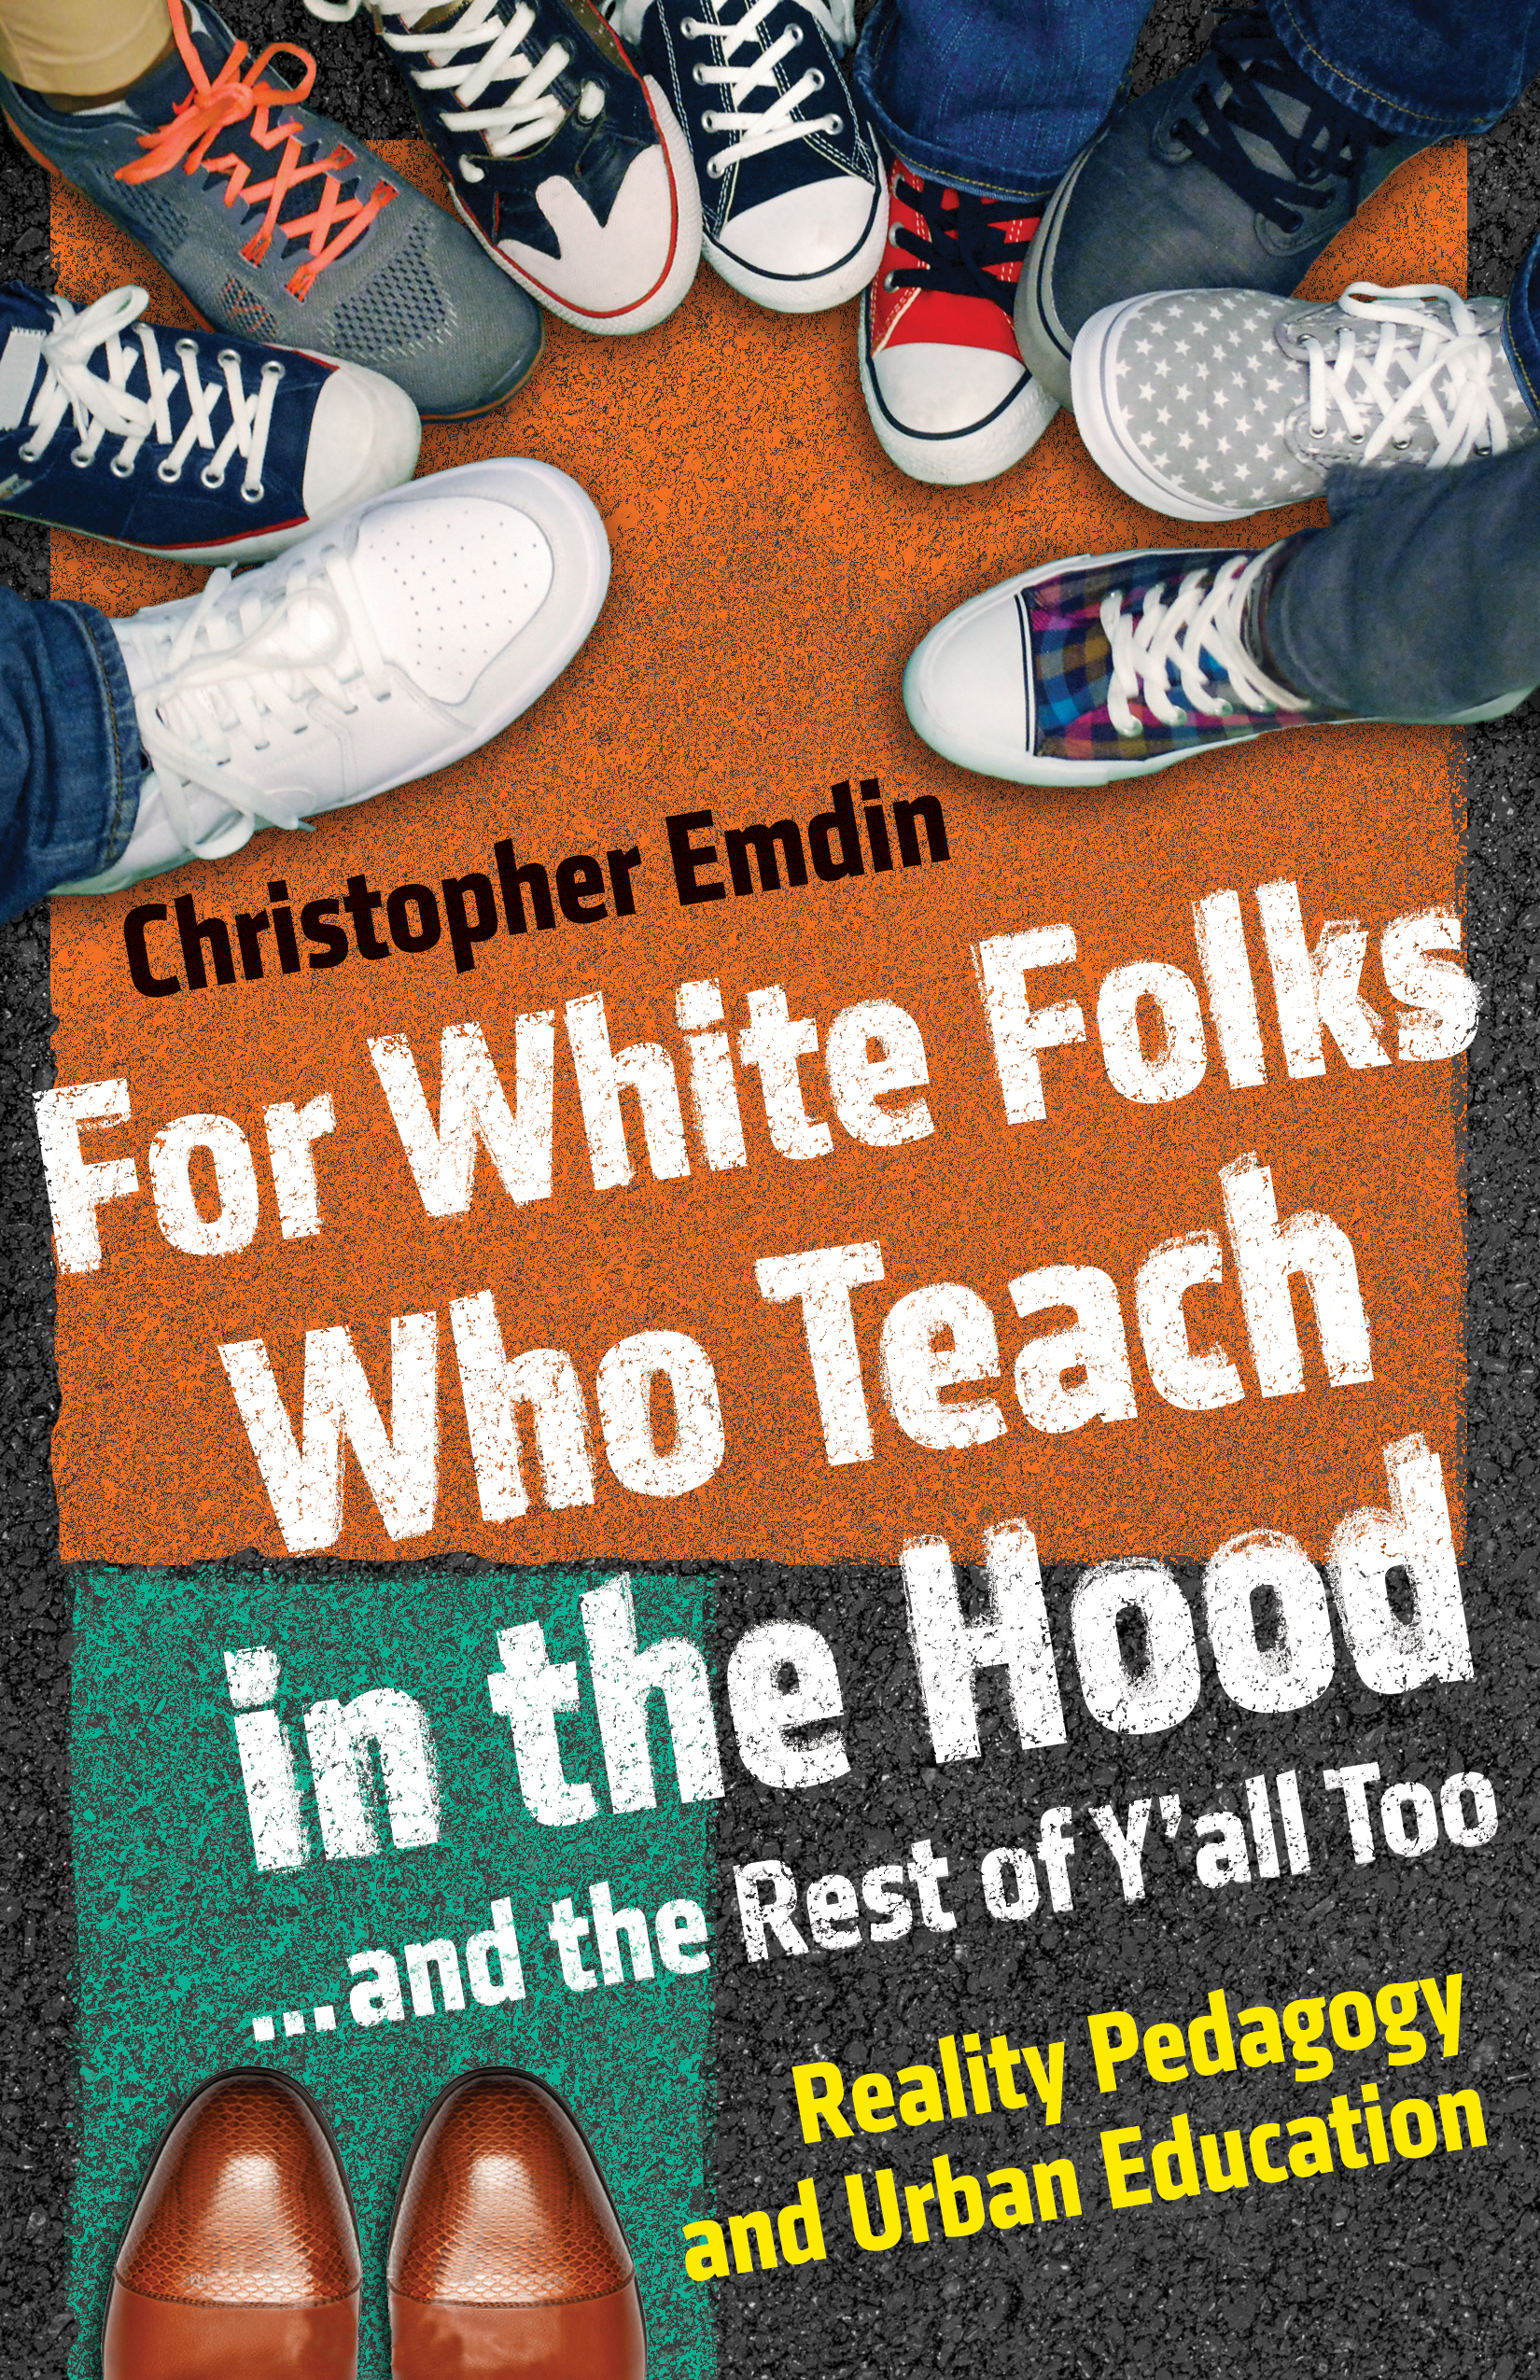 Emdin-ForWhiteFolksWhoTeachintheHood-1.jpg